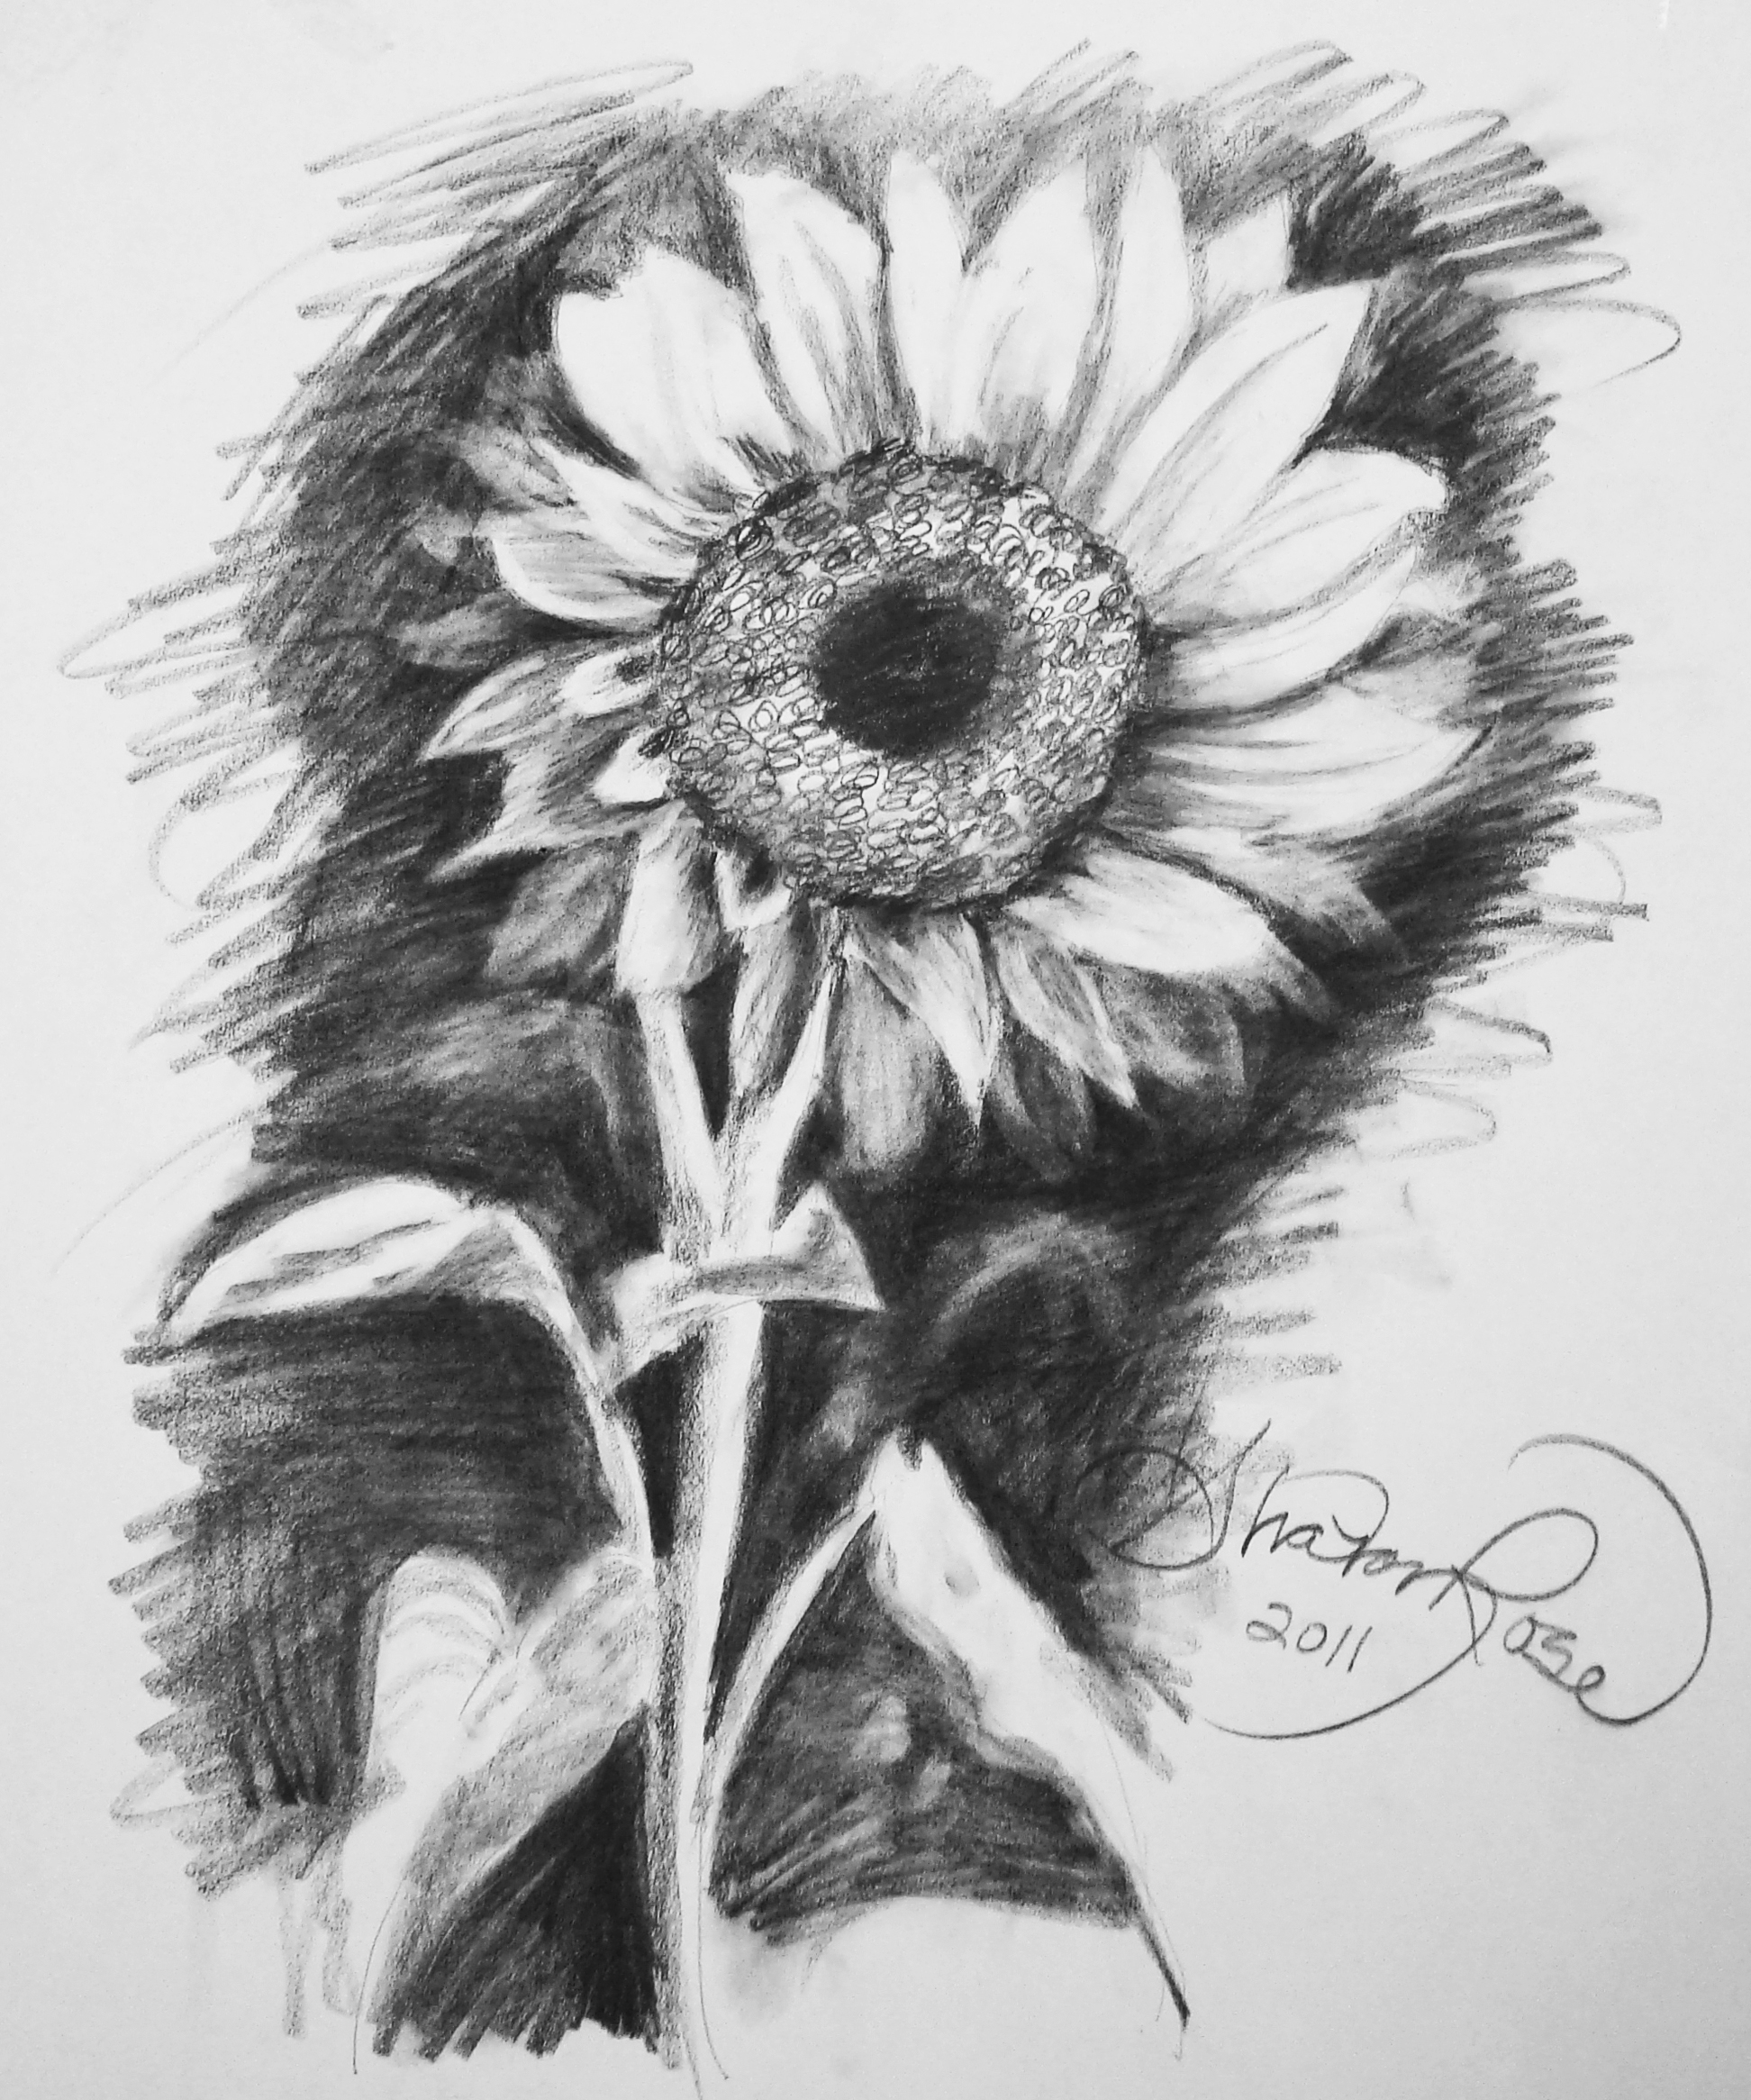 drawings of sunflowers sunflowers drawing by sarah parks of drawings sunflowers